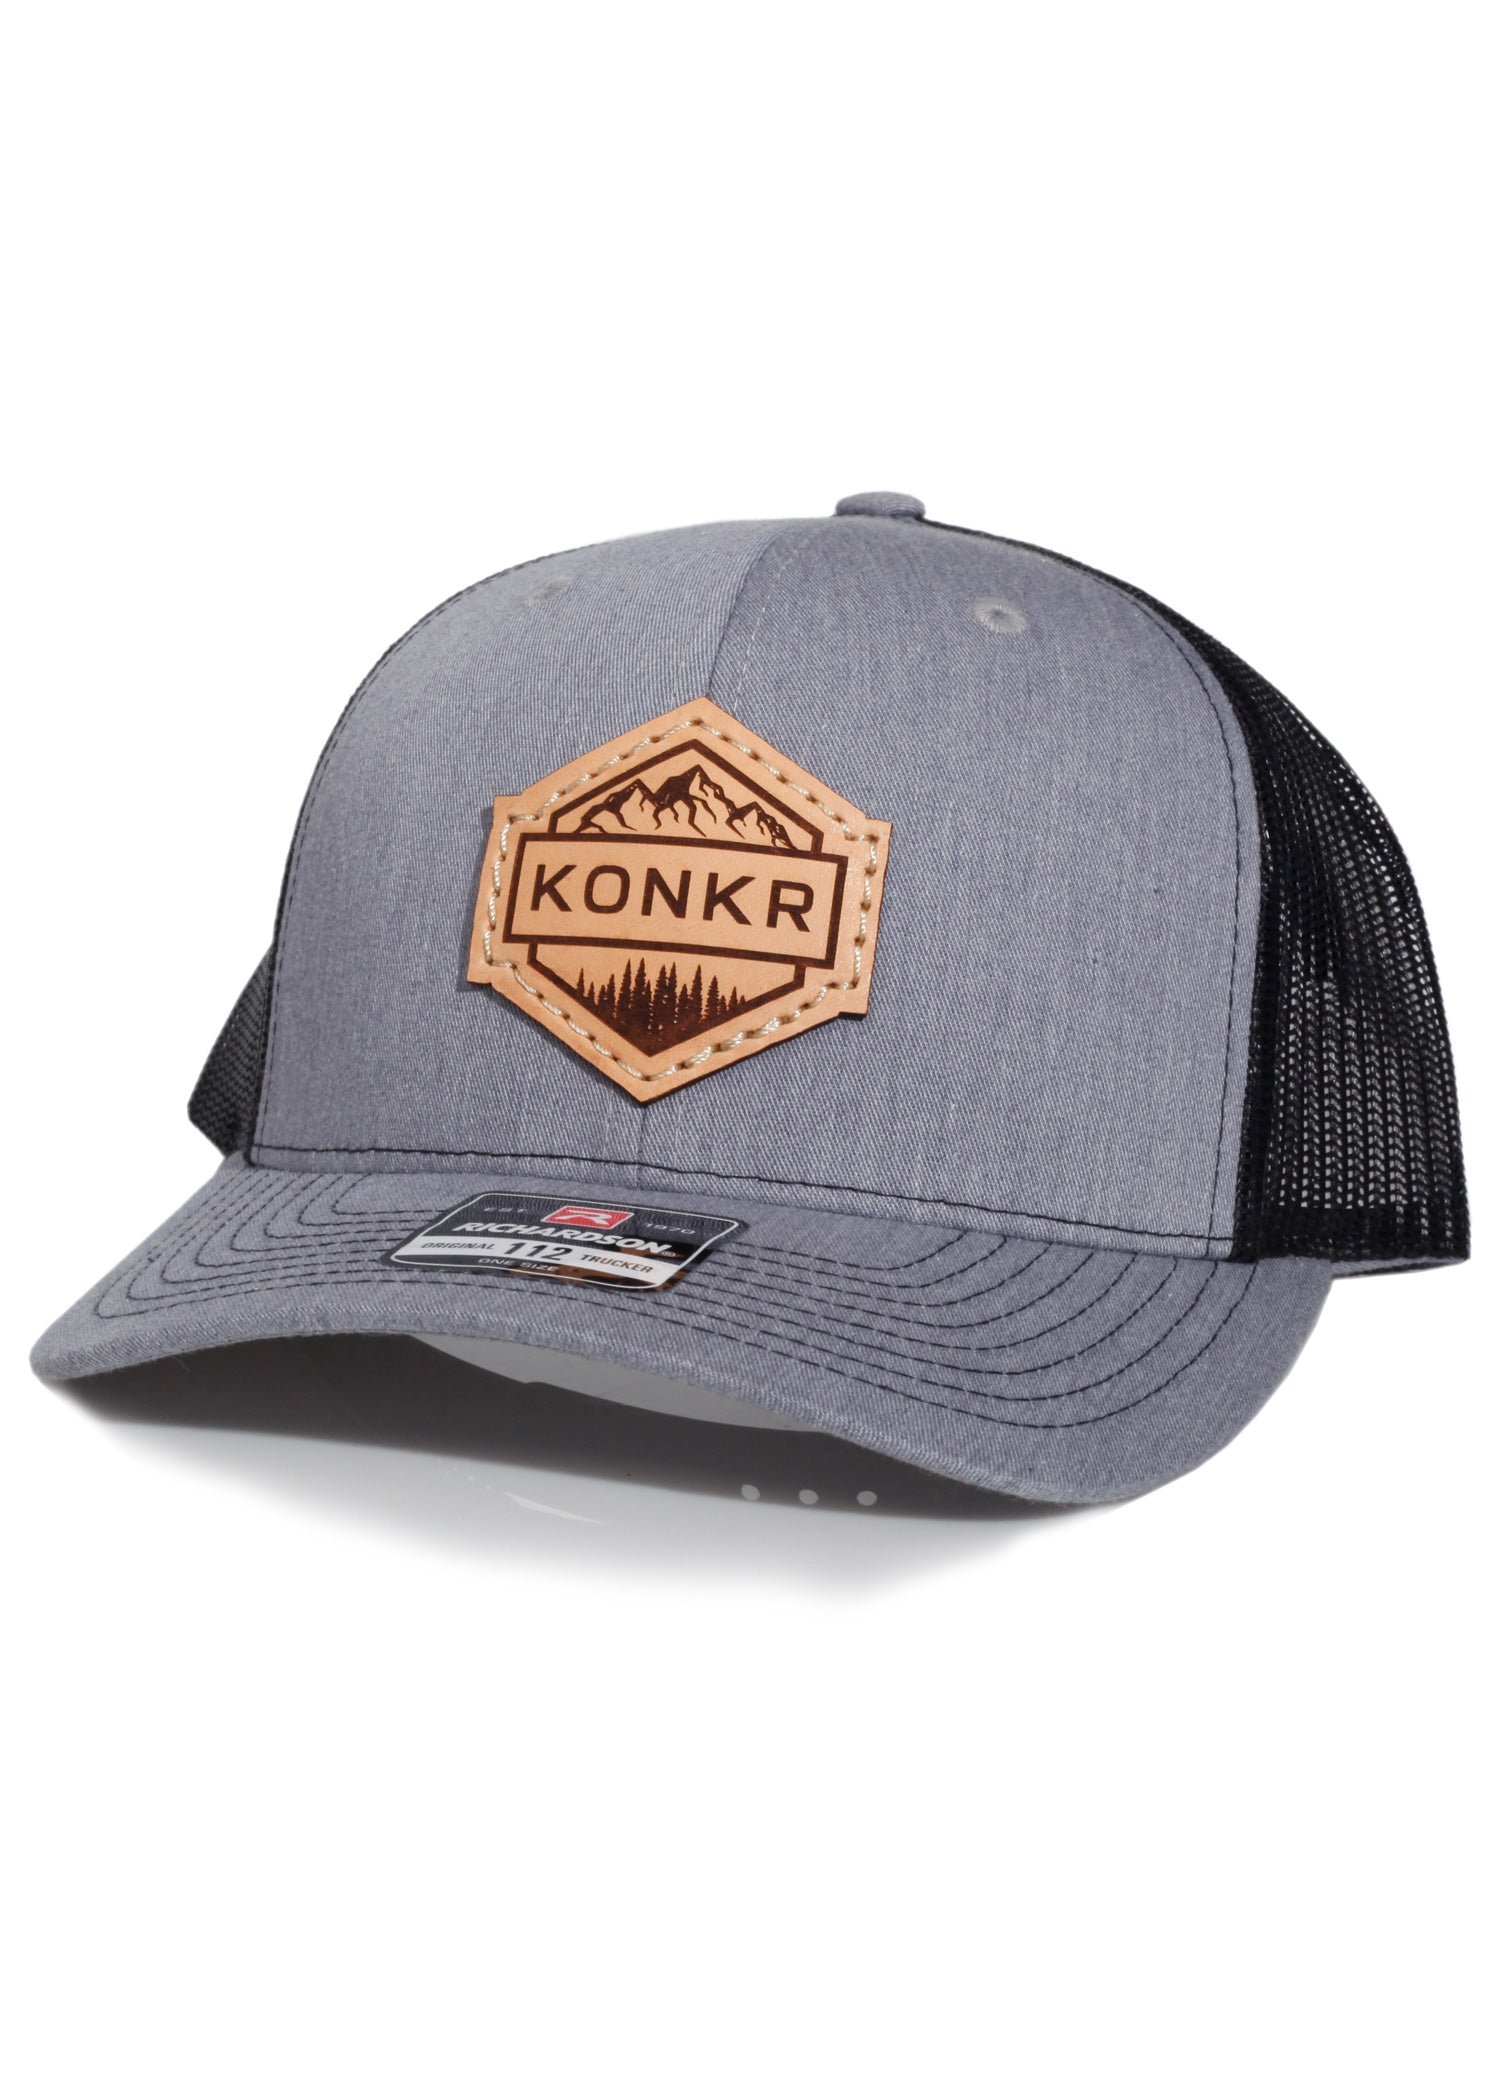 Konkr LLC - Richardson 112 Heather Grey/Black